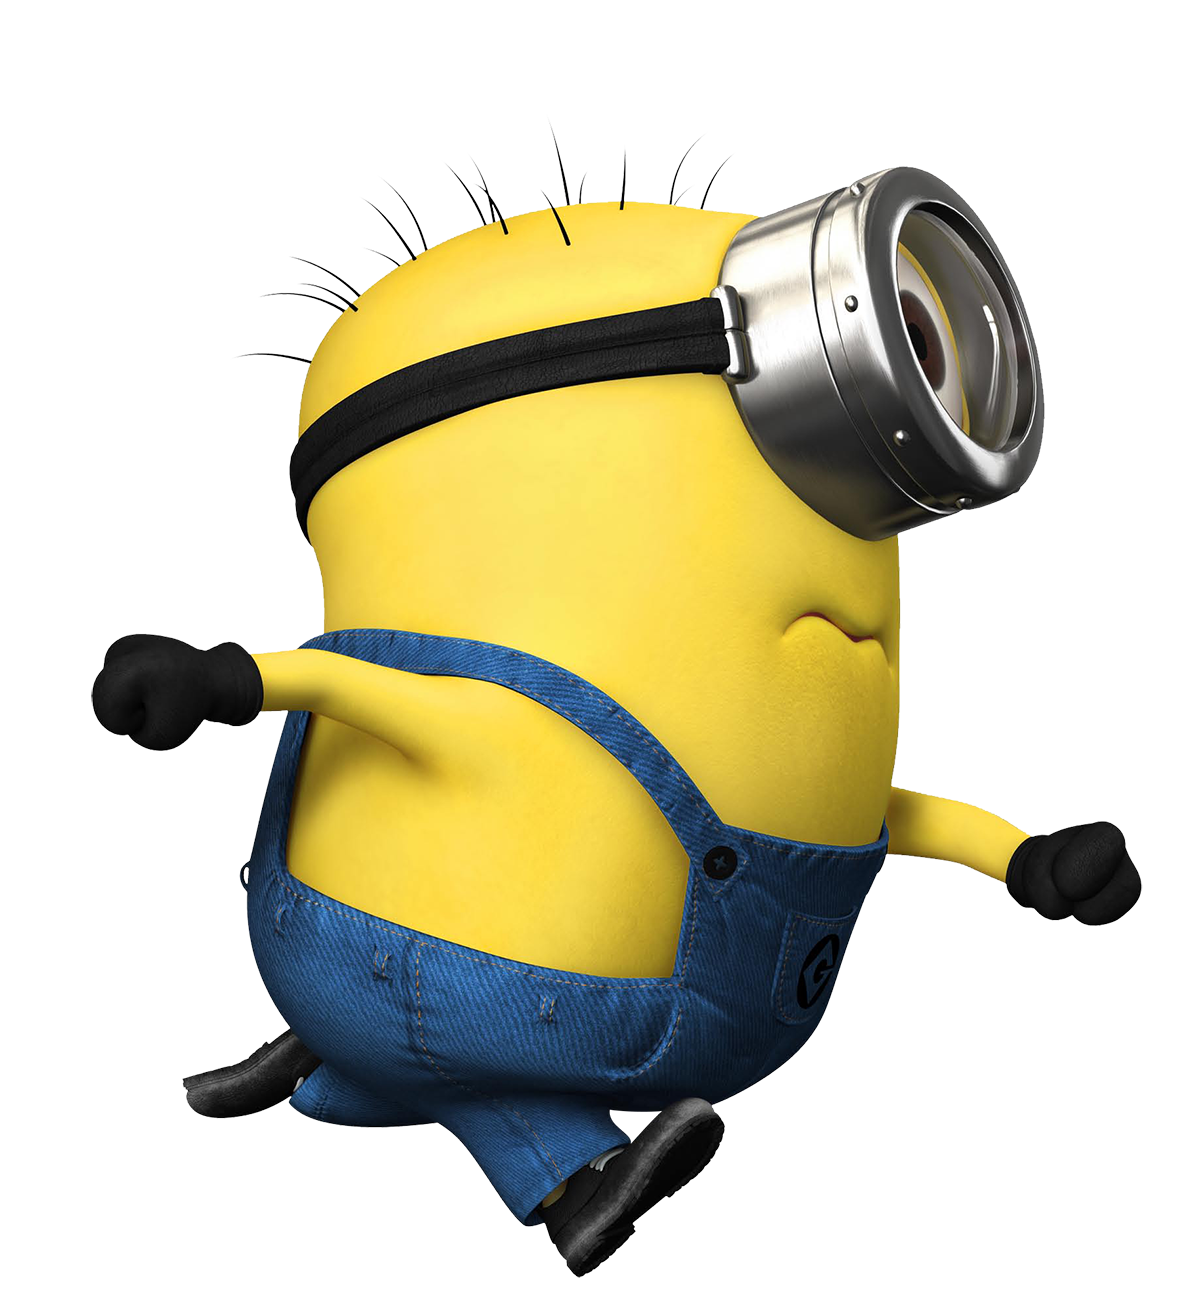 Despicable me minion png. Minions images free download